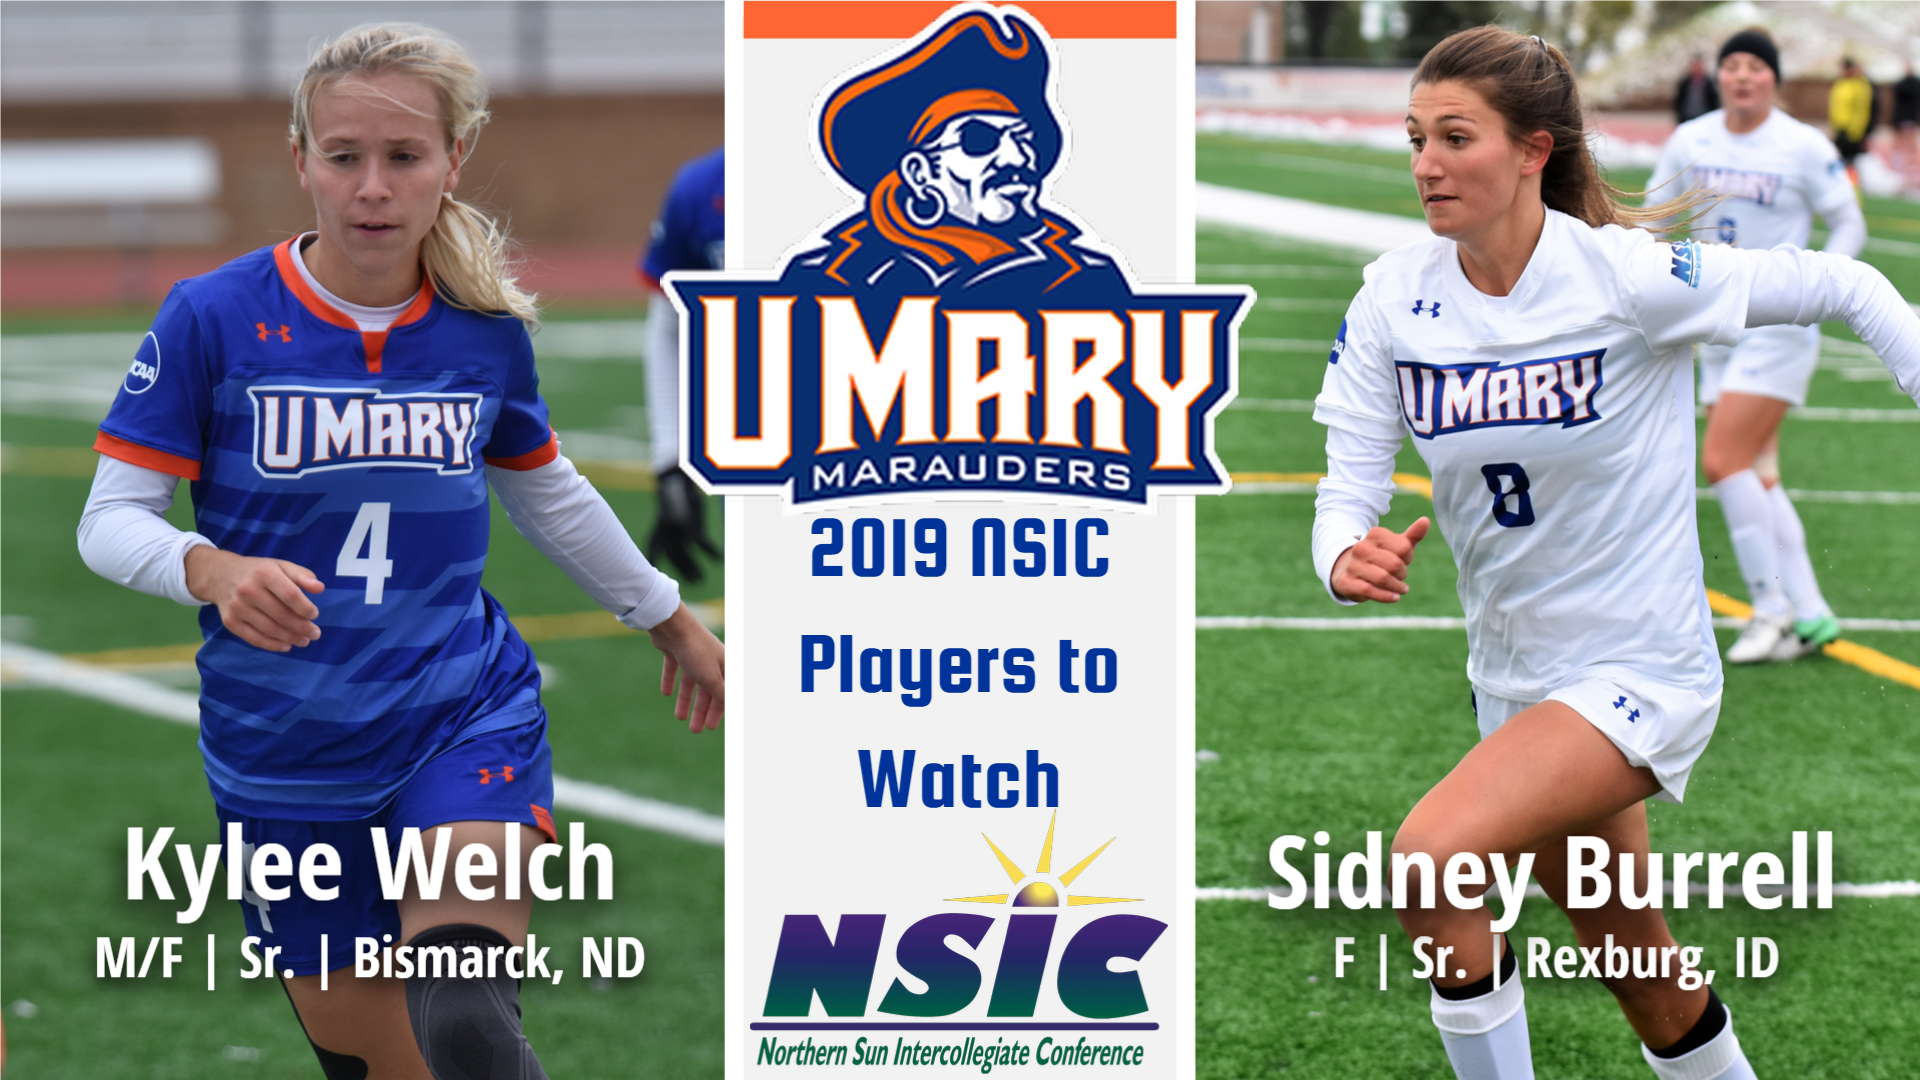 Women's Soccer - University of Mary Athletics